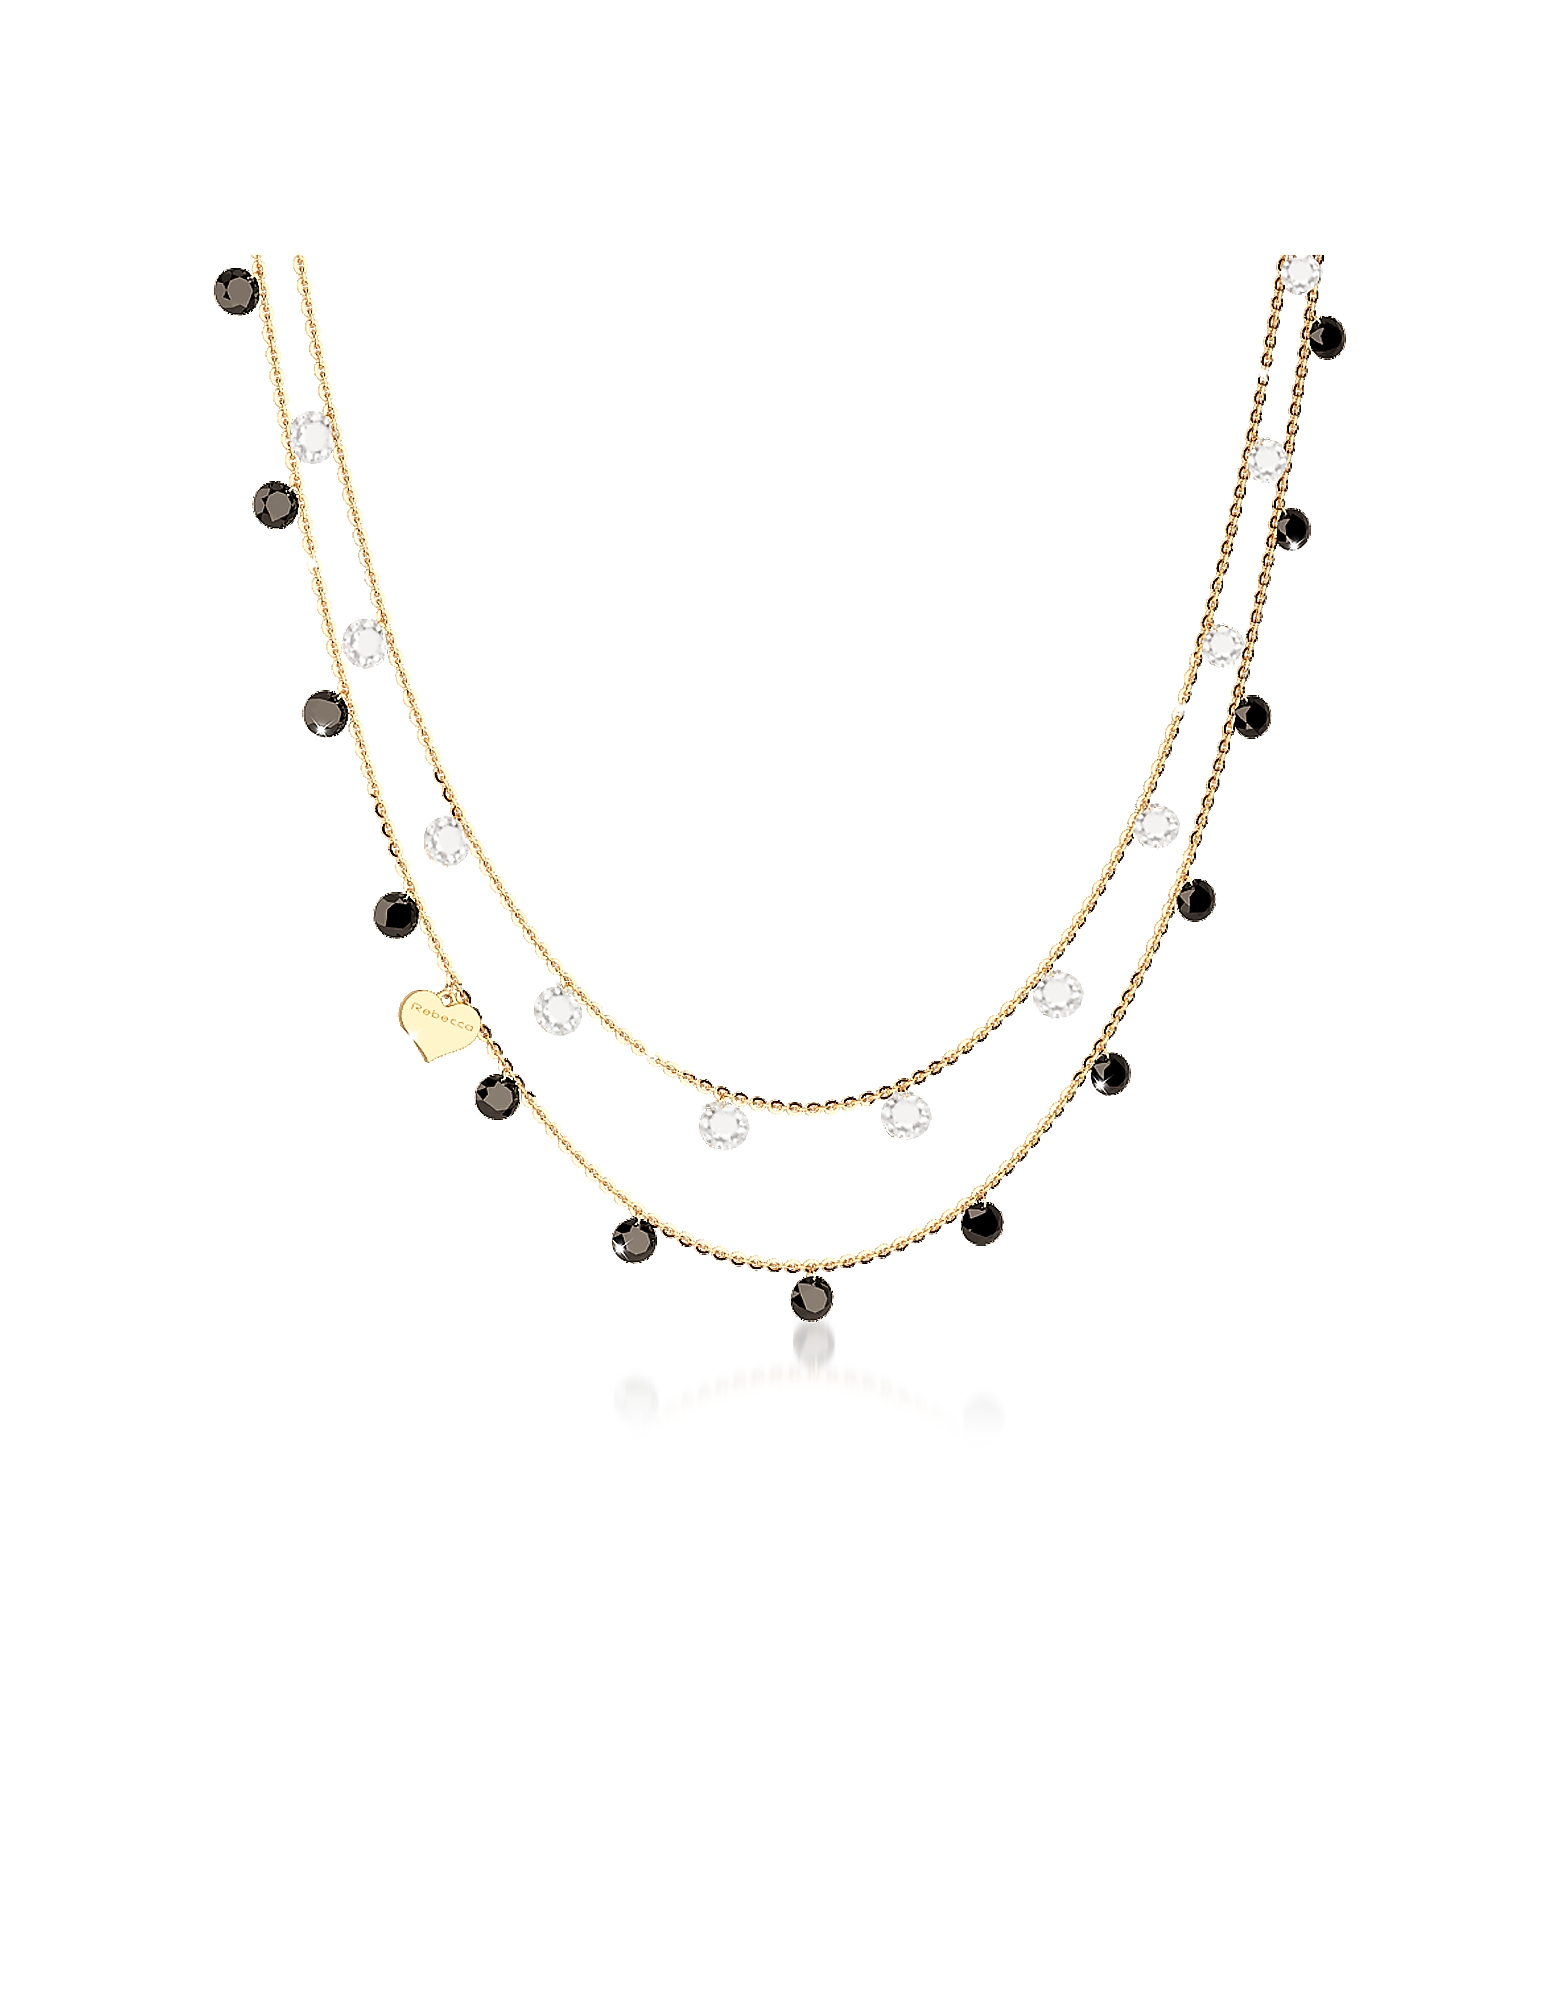 Lucciole Sterling Silver Gold Plated Necklace w/Crystals